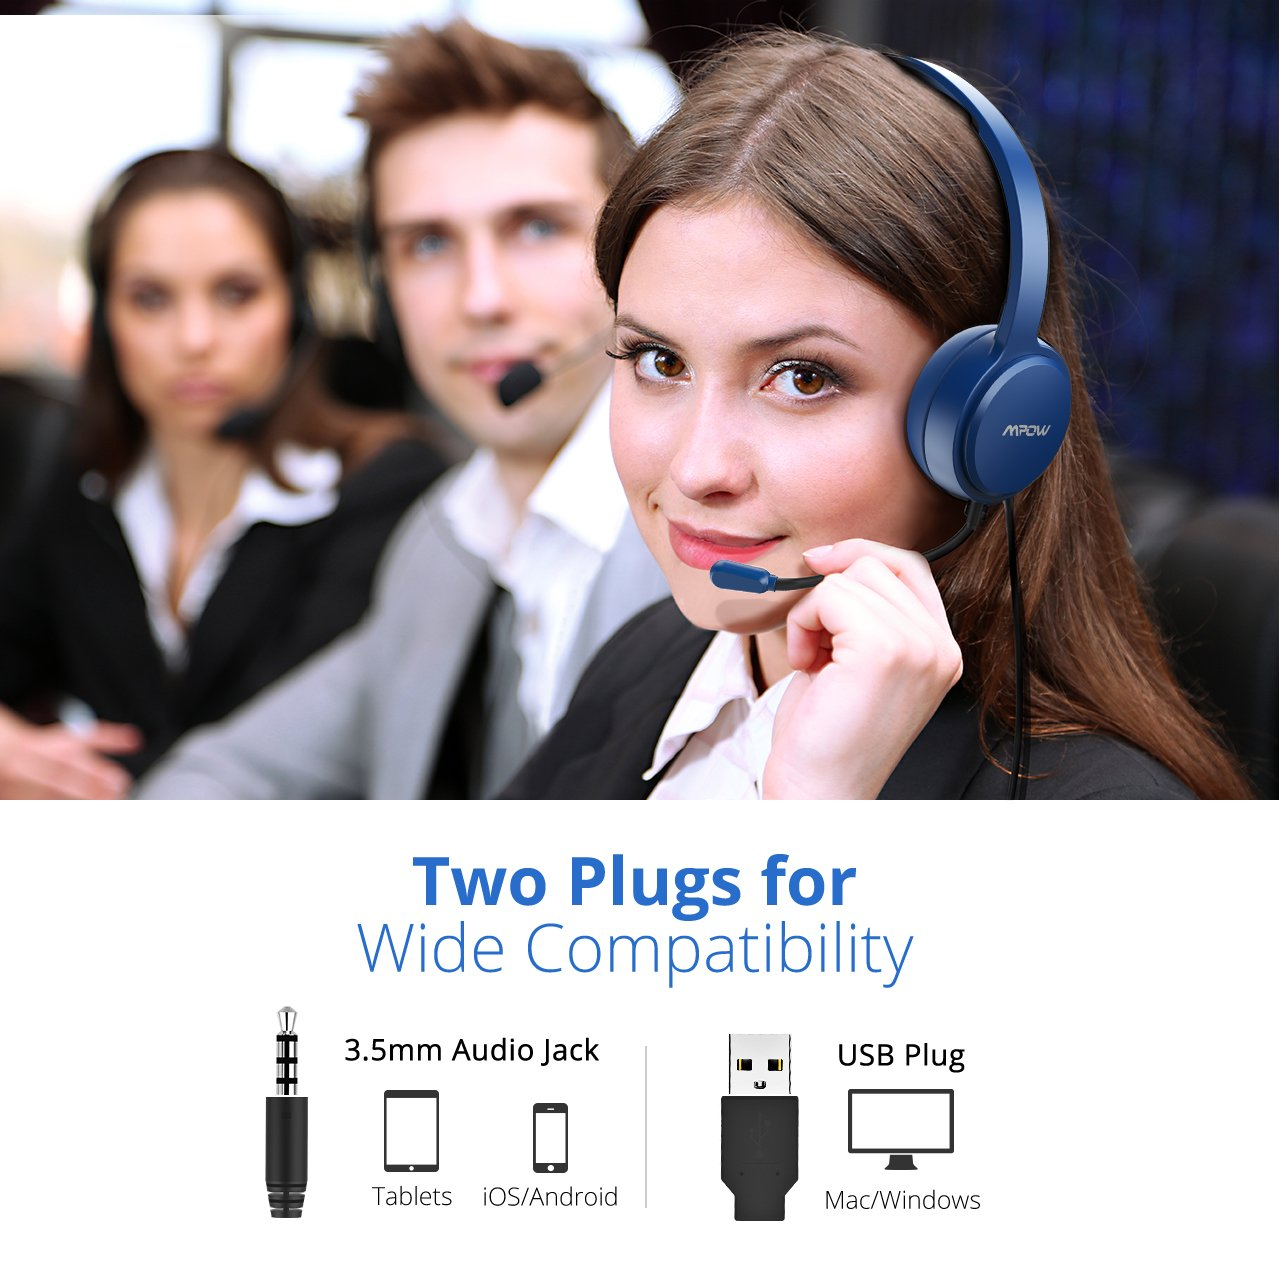 Multi-Use USB Headset /& 3.5mm Chat Headset Office Headset Gaming Headset VOIP Headset Skype Headset In-line Control Mac PC Moblie Phone Built-in Noise Reduction Sound Card Mpow PC Headset Blue